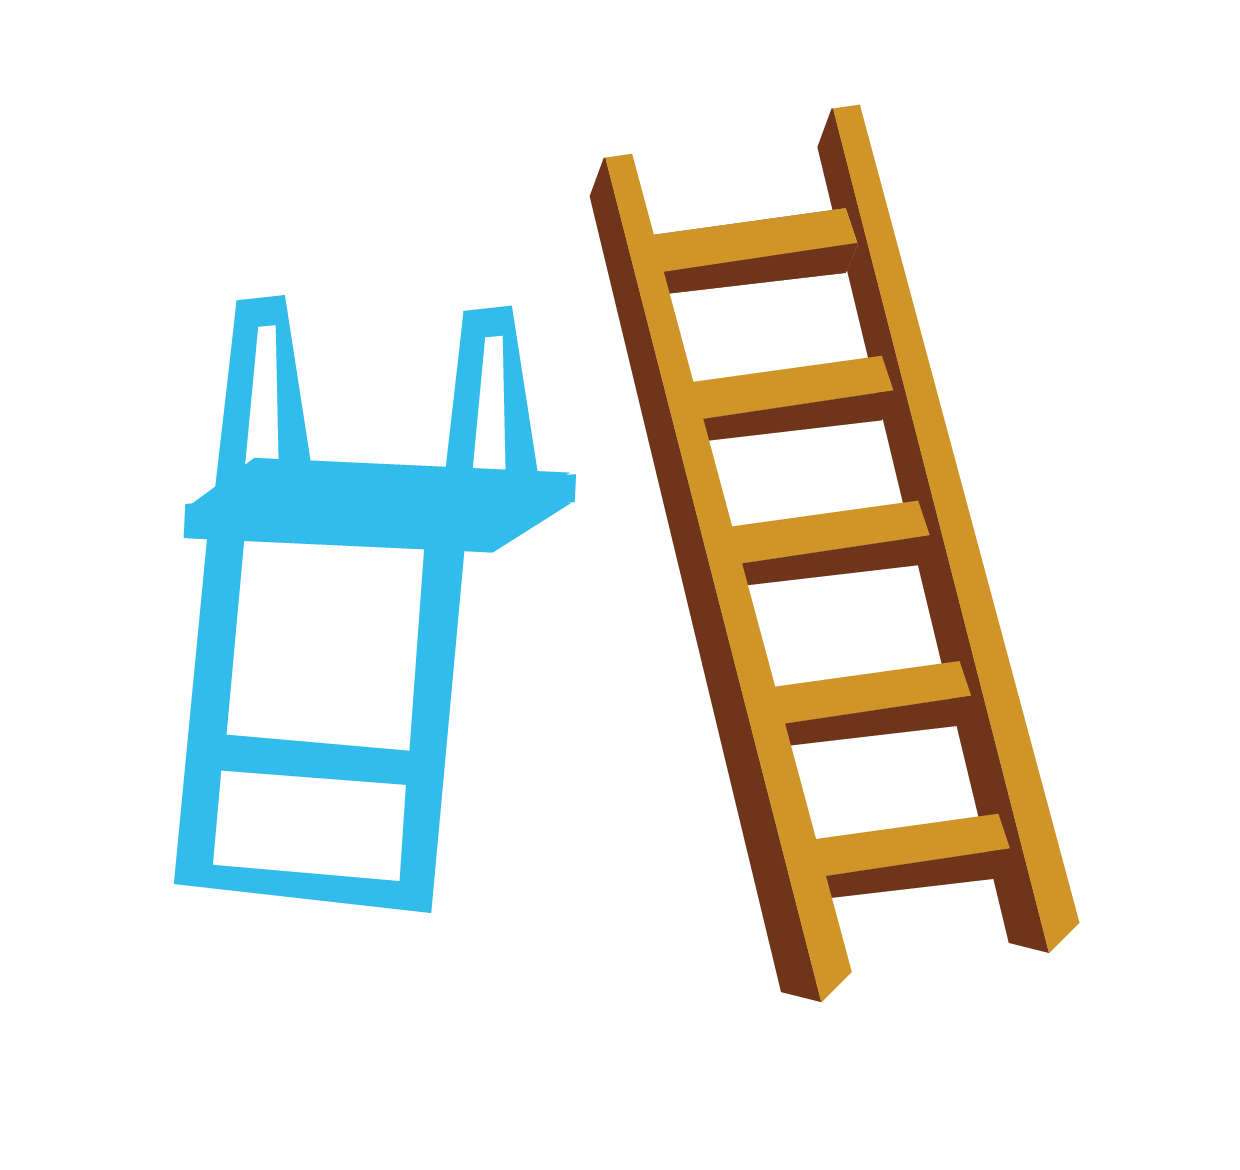 Staircase vector rope ladder. Stairs blue wooden ladders